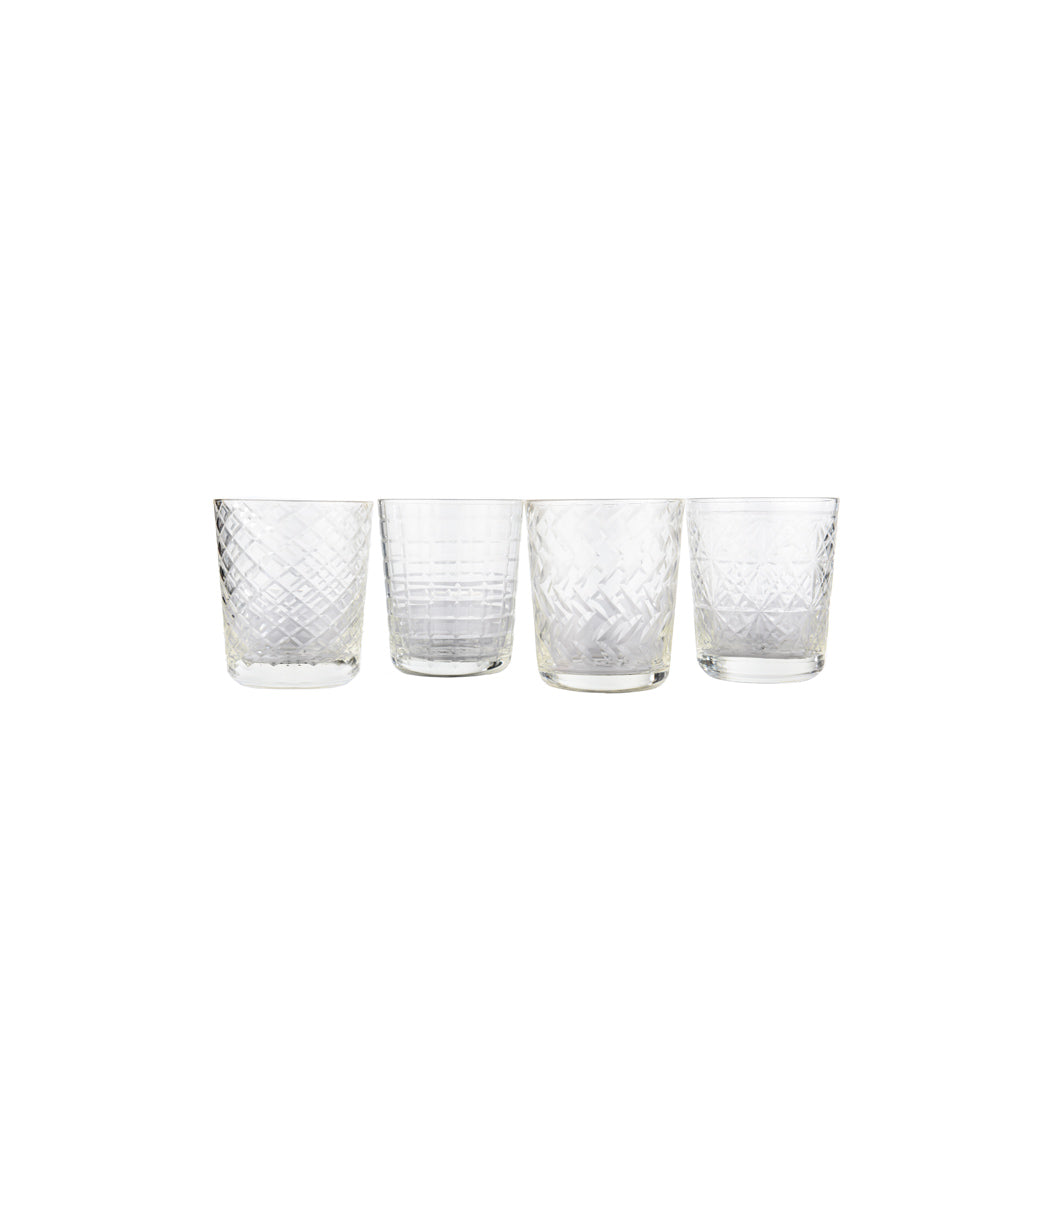 Water PP clear glass Set of 4